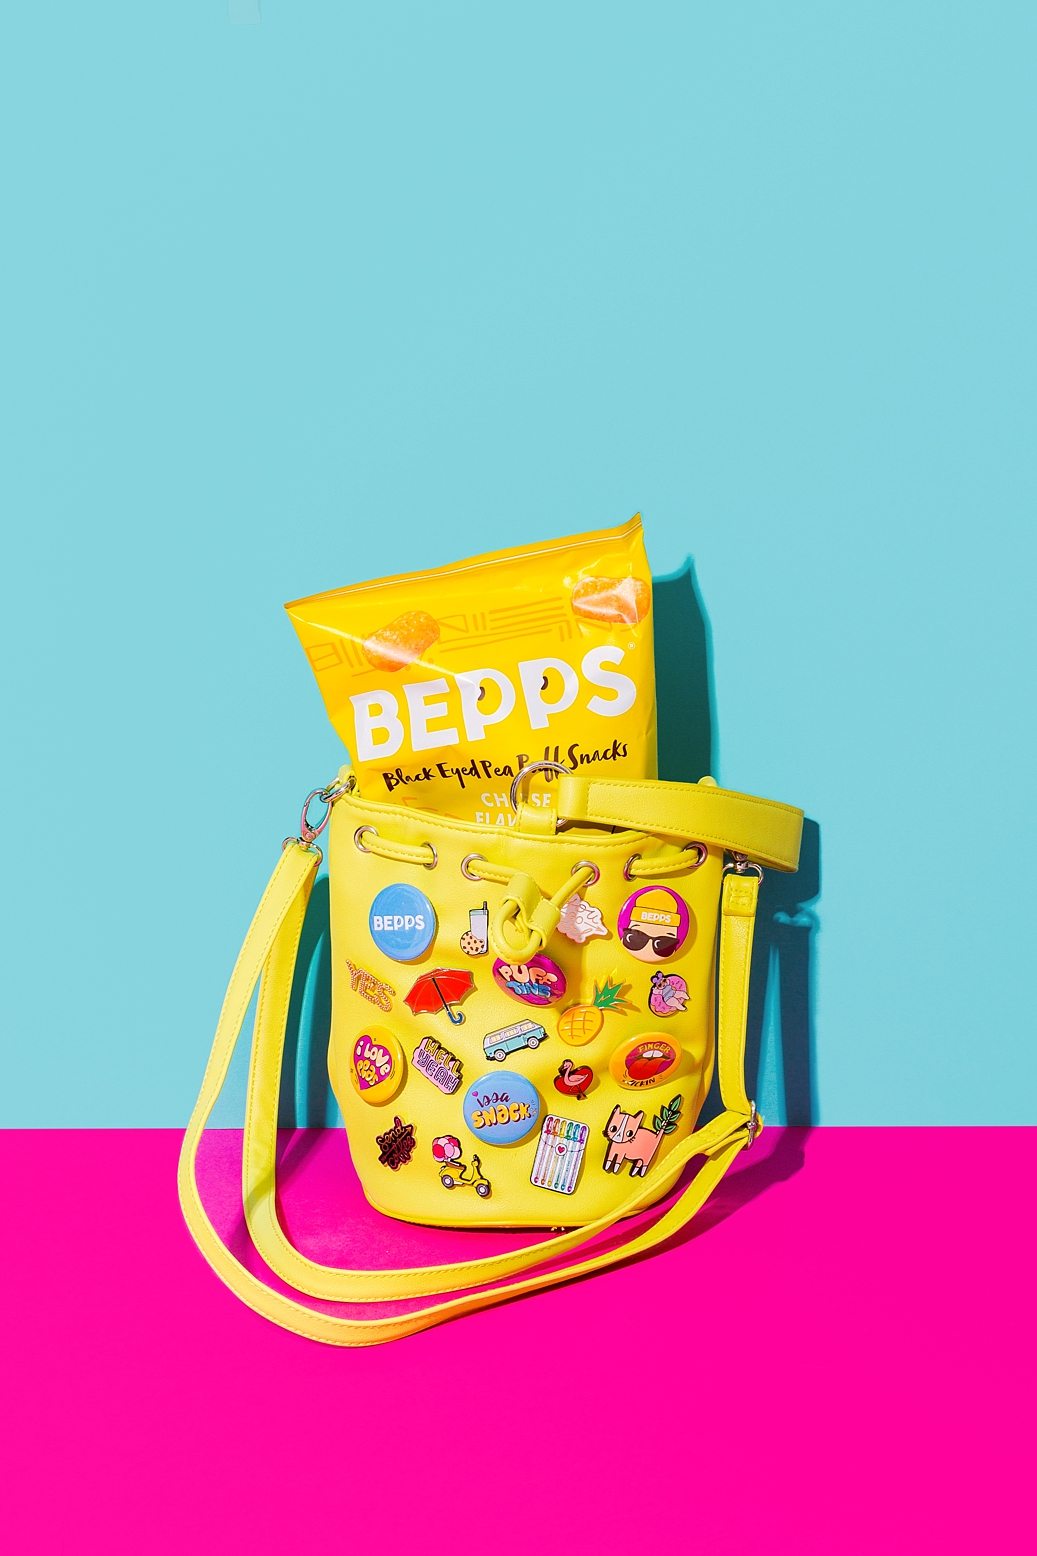 Colourful product photography and content creation for Bepps Snacks by Marianne Taylor.